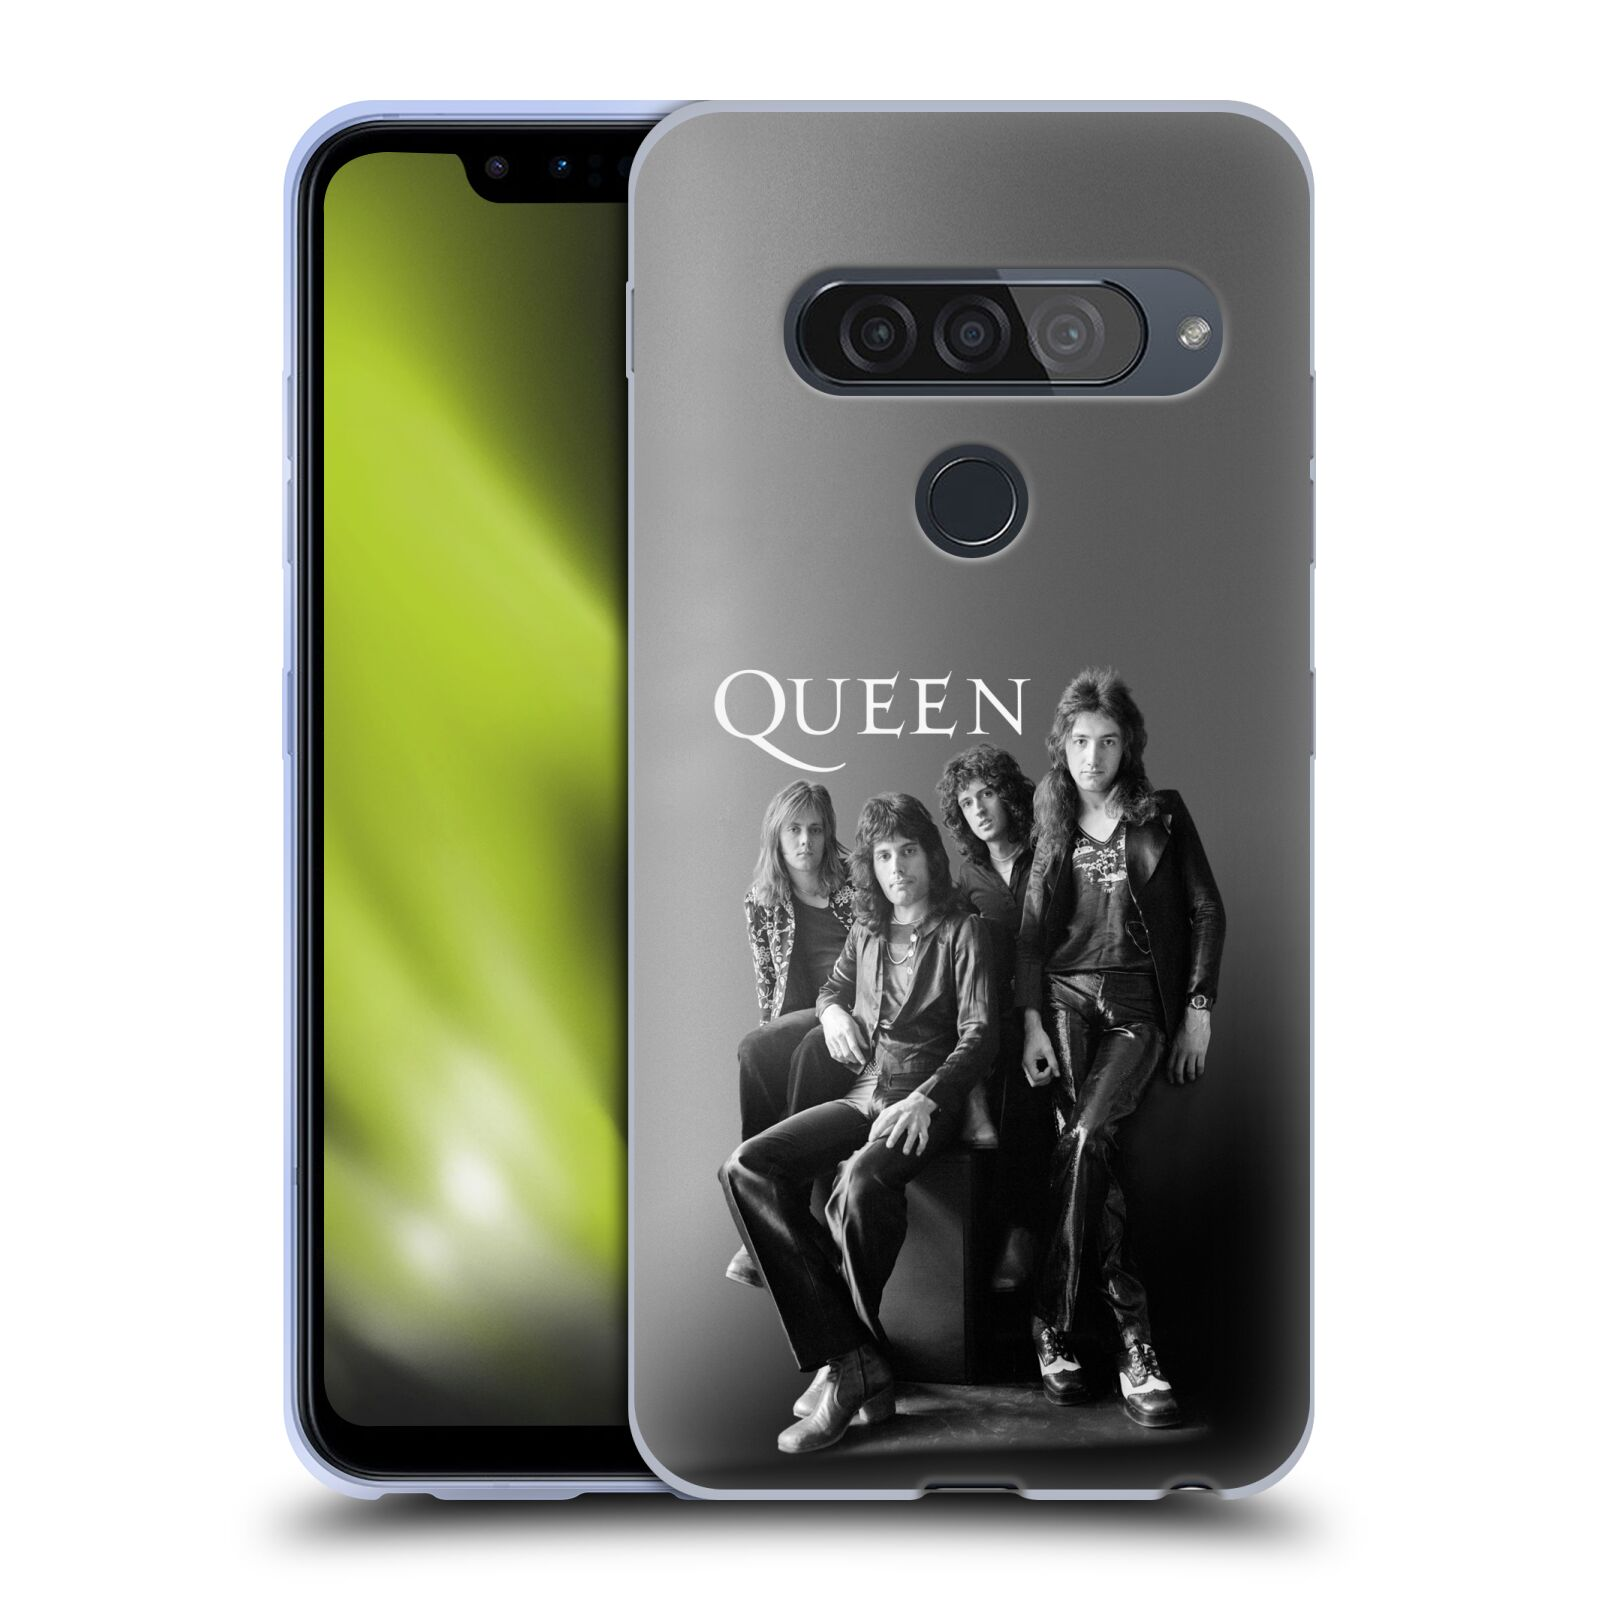 Silikonové pouzdro na mobil LG G8s ThinQ - Head Case - Queen - Skupina